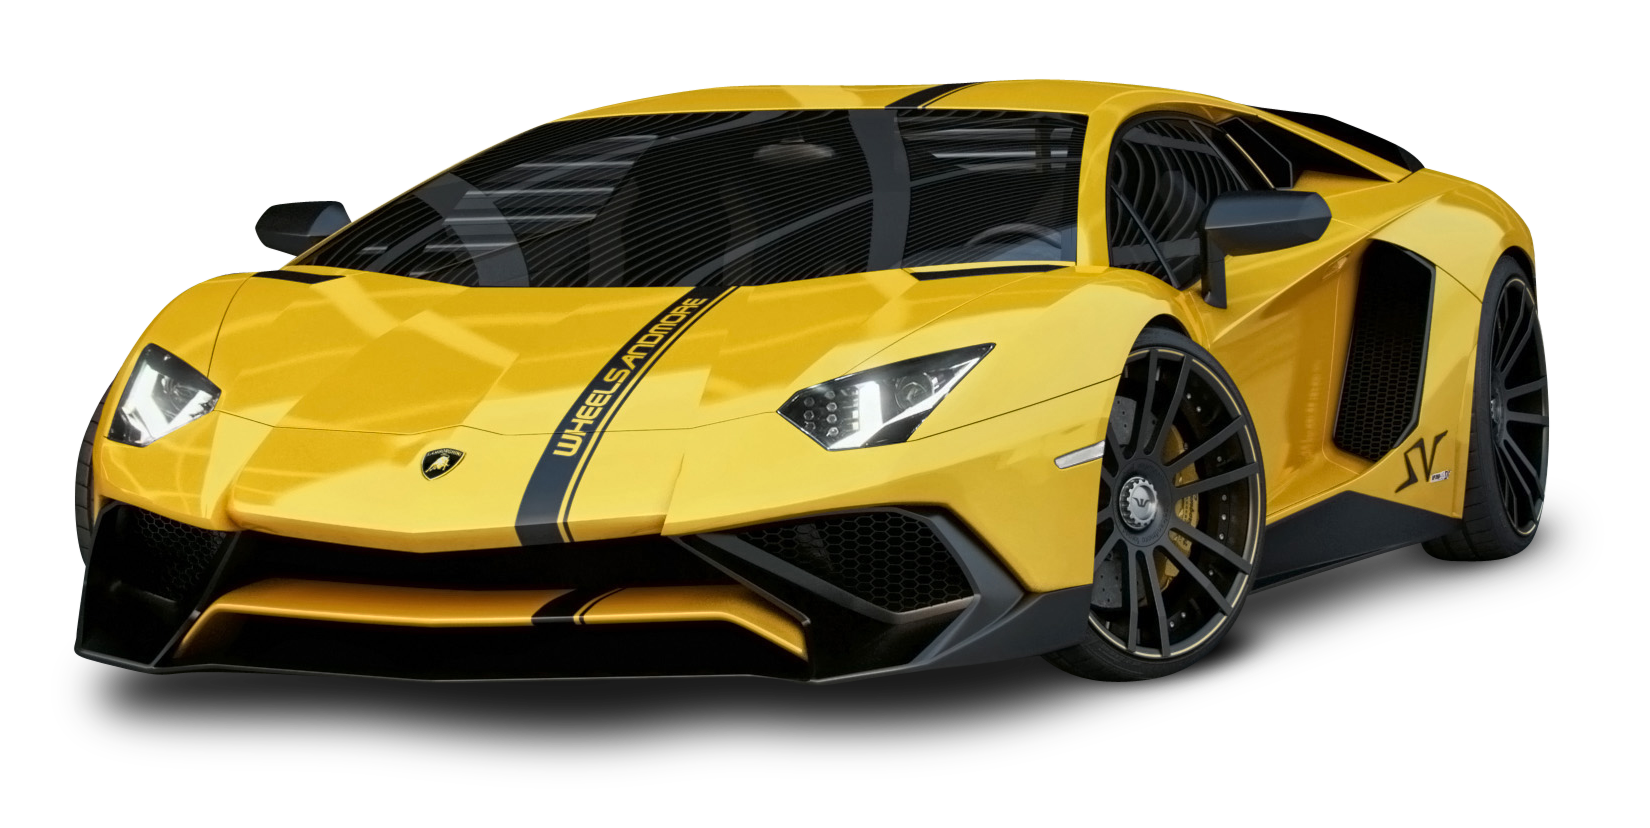 yellow lamborghini aventador car png image purepng free transparent cc0 png image library. Black Bedroom Furniture Sets. Home Design Ideas